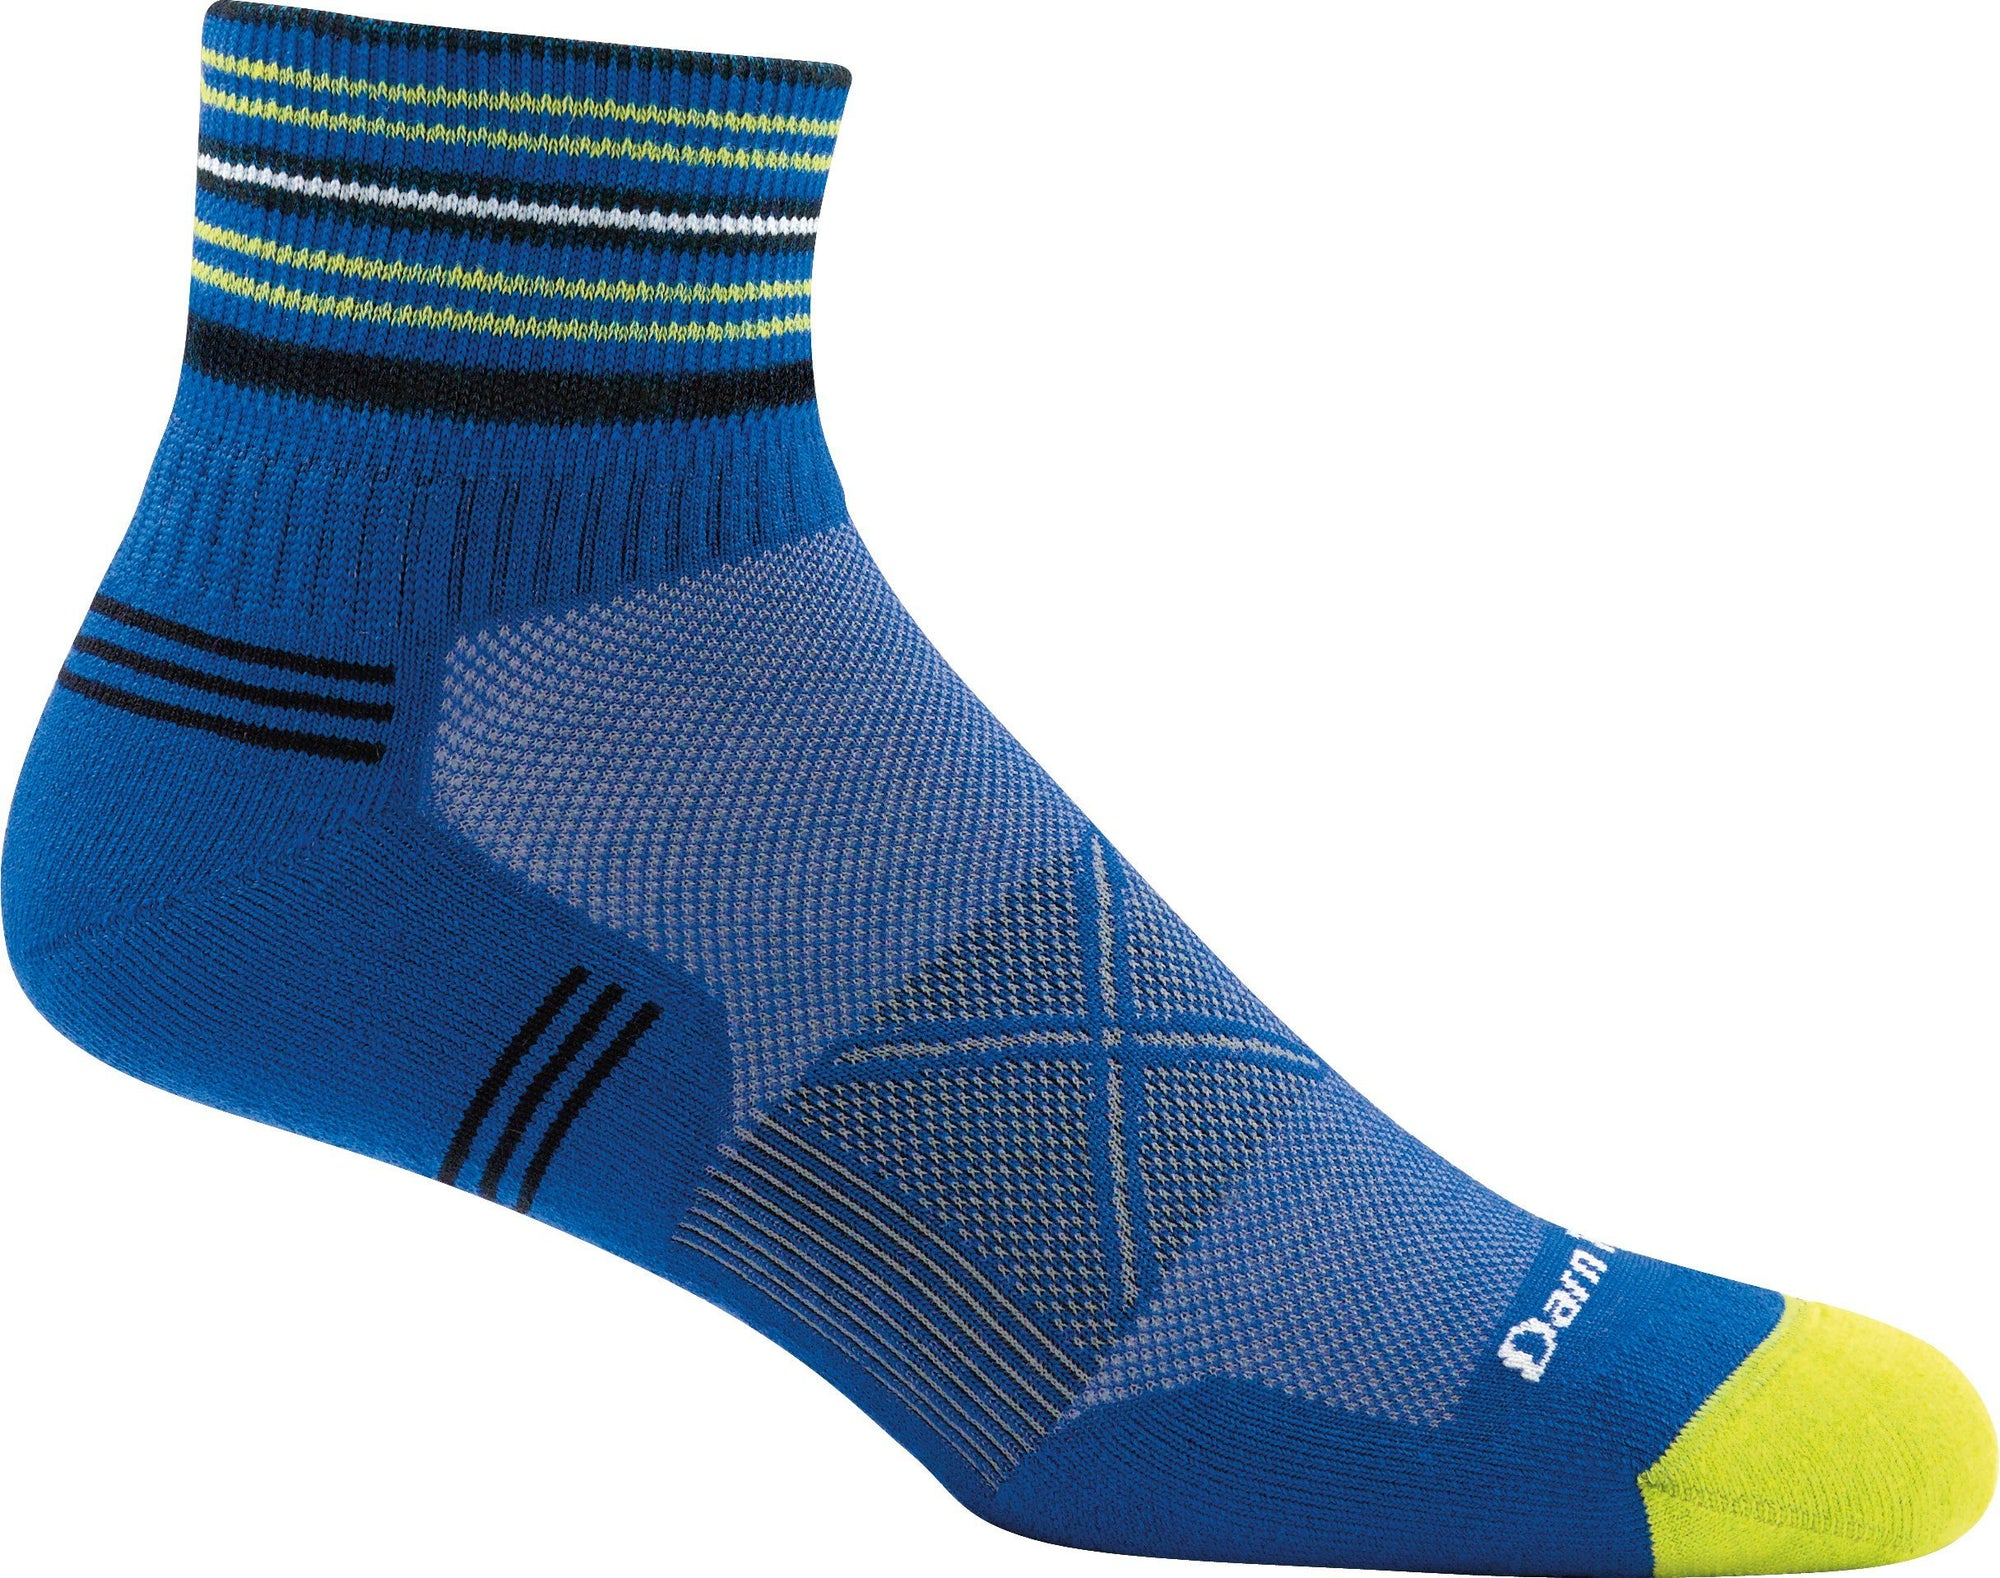 Darn Tough - Vertex Coolmax 1/4 Ultra-lightweight With Cushion | Men's - Knock Your Socks Off